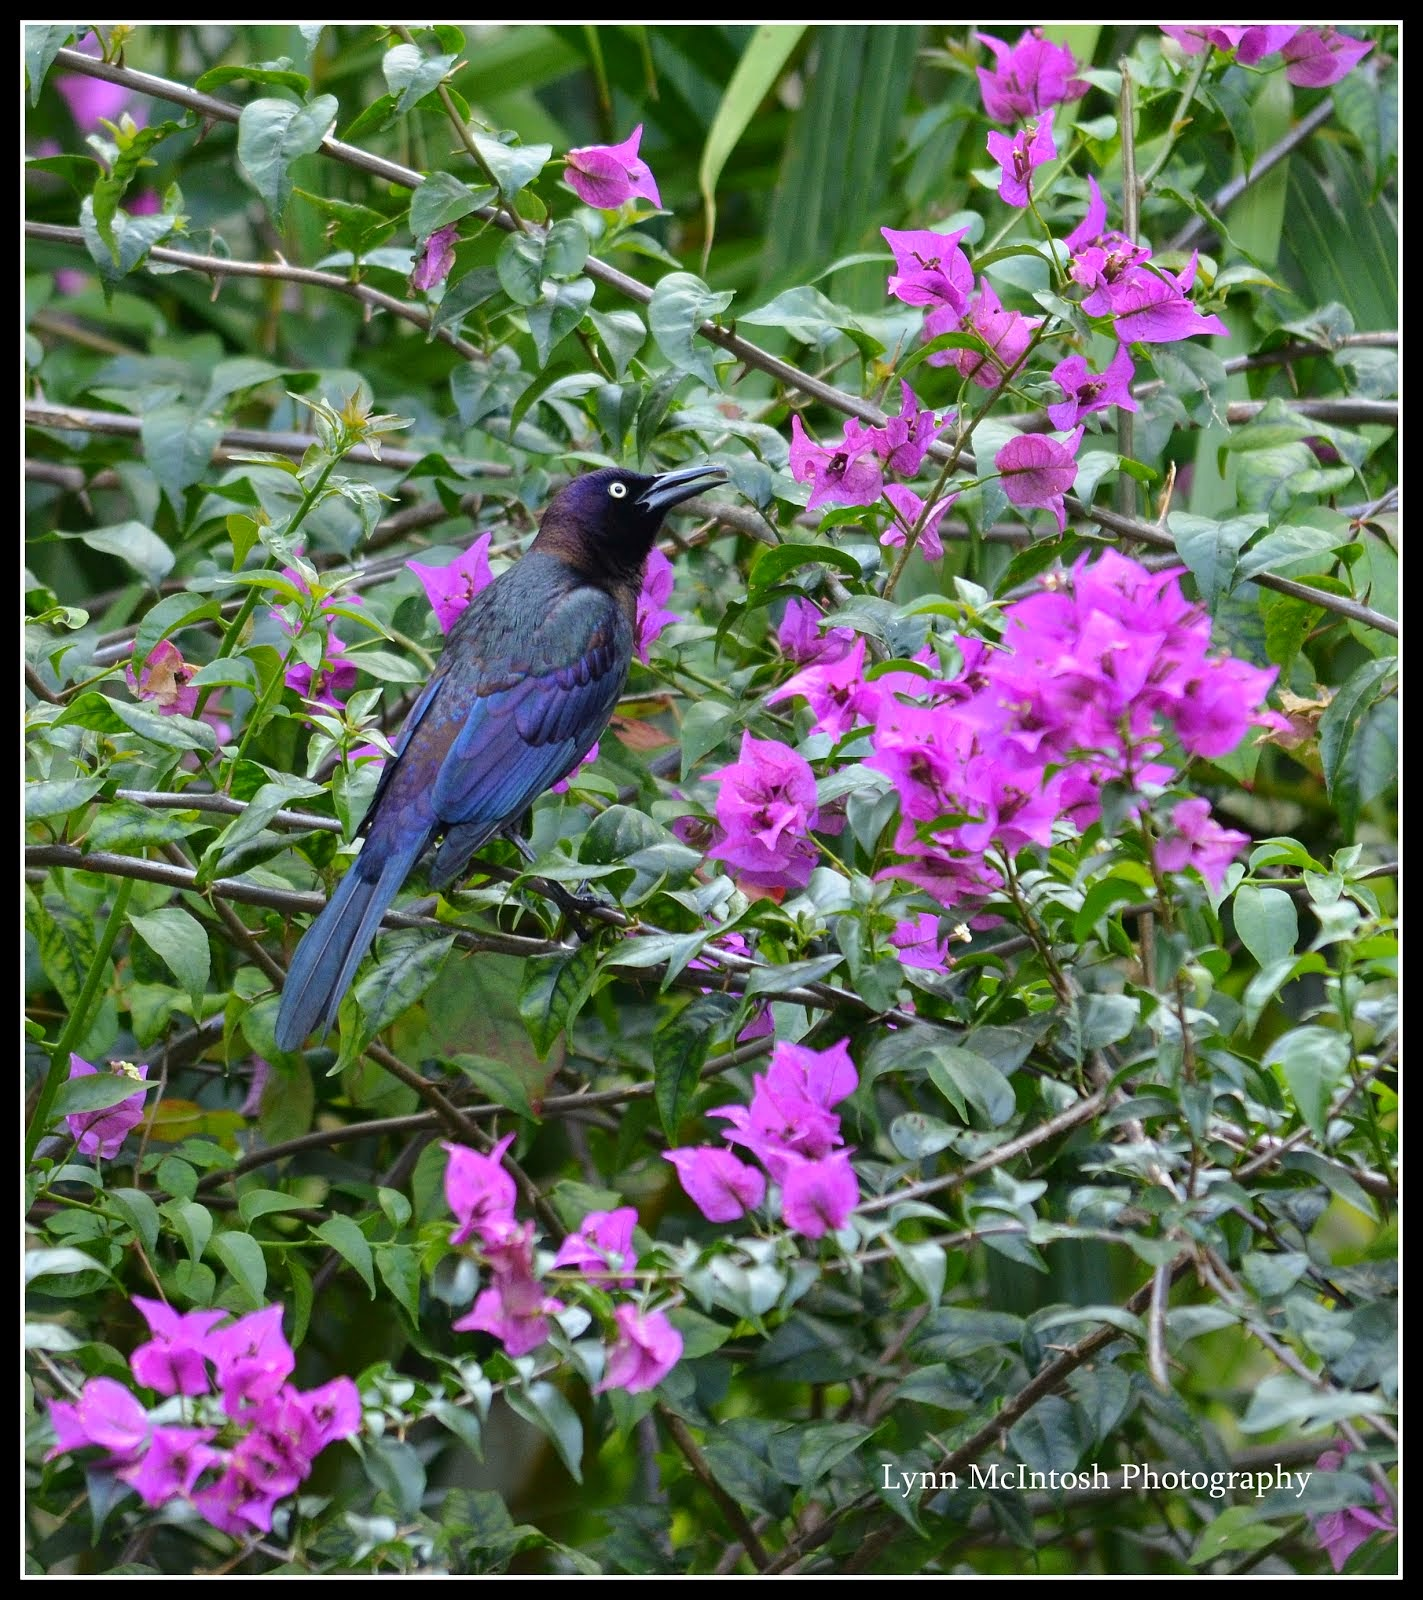 Grackle in Bougainvillea